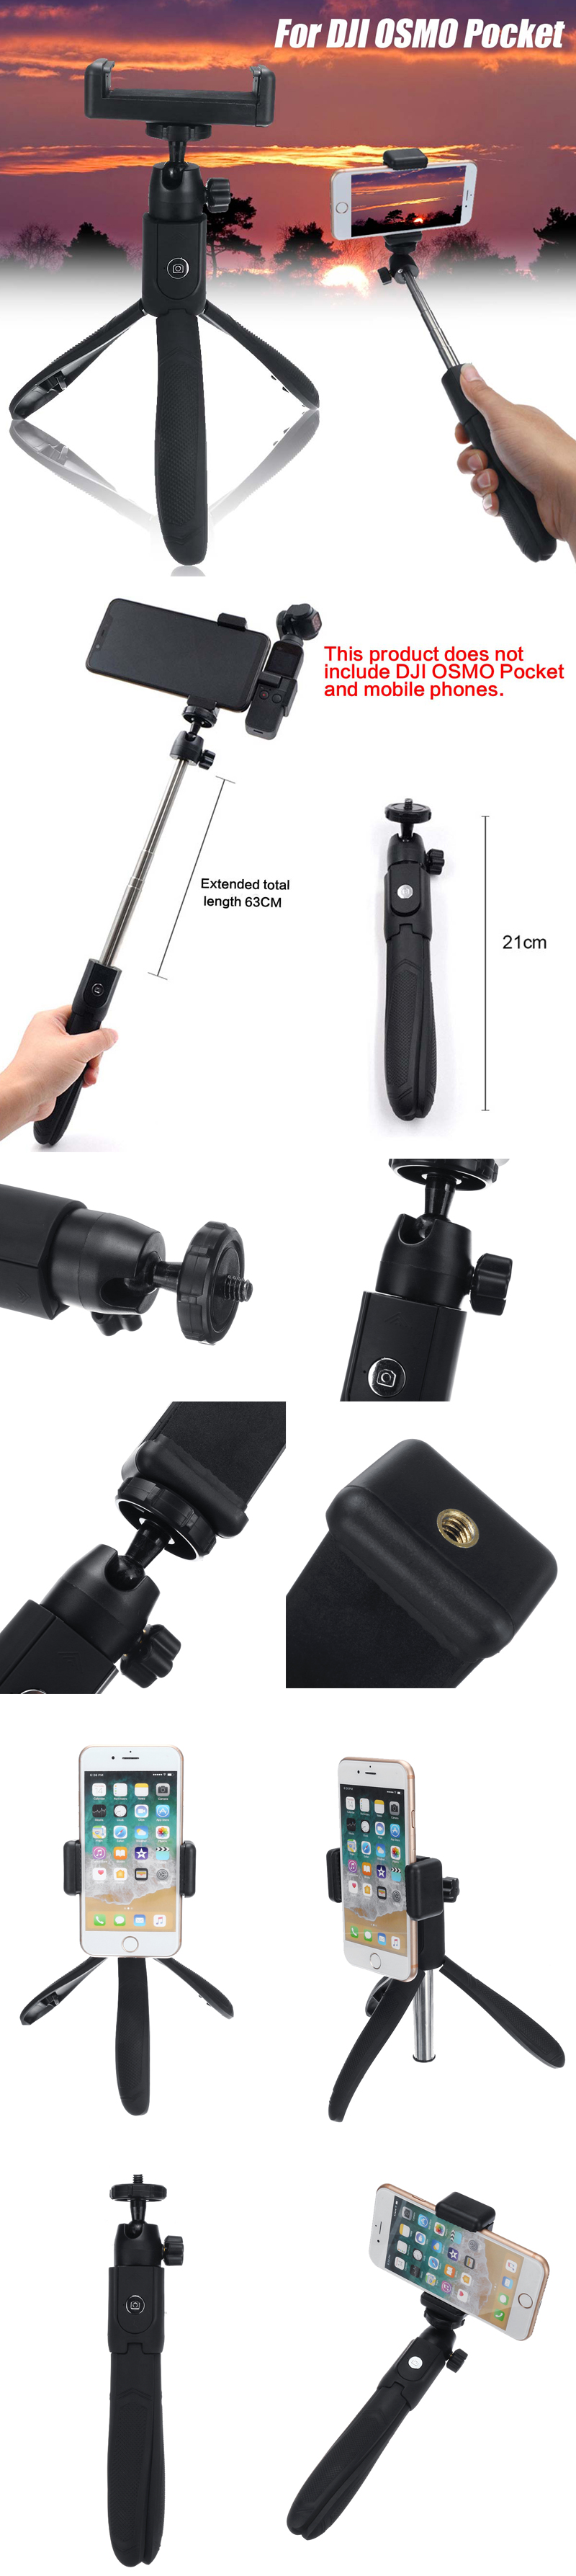 bluetooth Selfie Stick For DJI OSMO Pocket Phone Holder Gimbal Stabilizer Outdoor Hunting Accessories